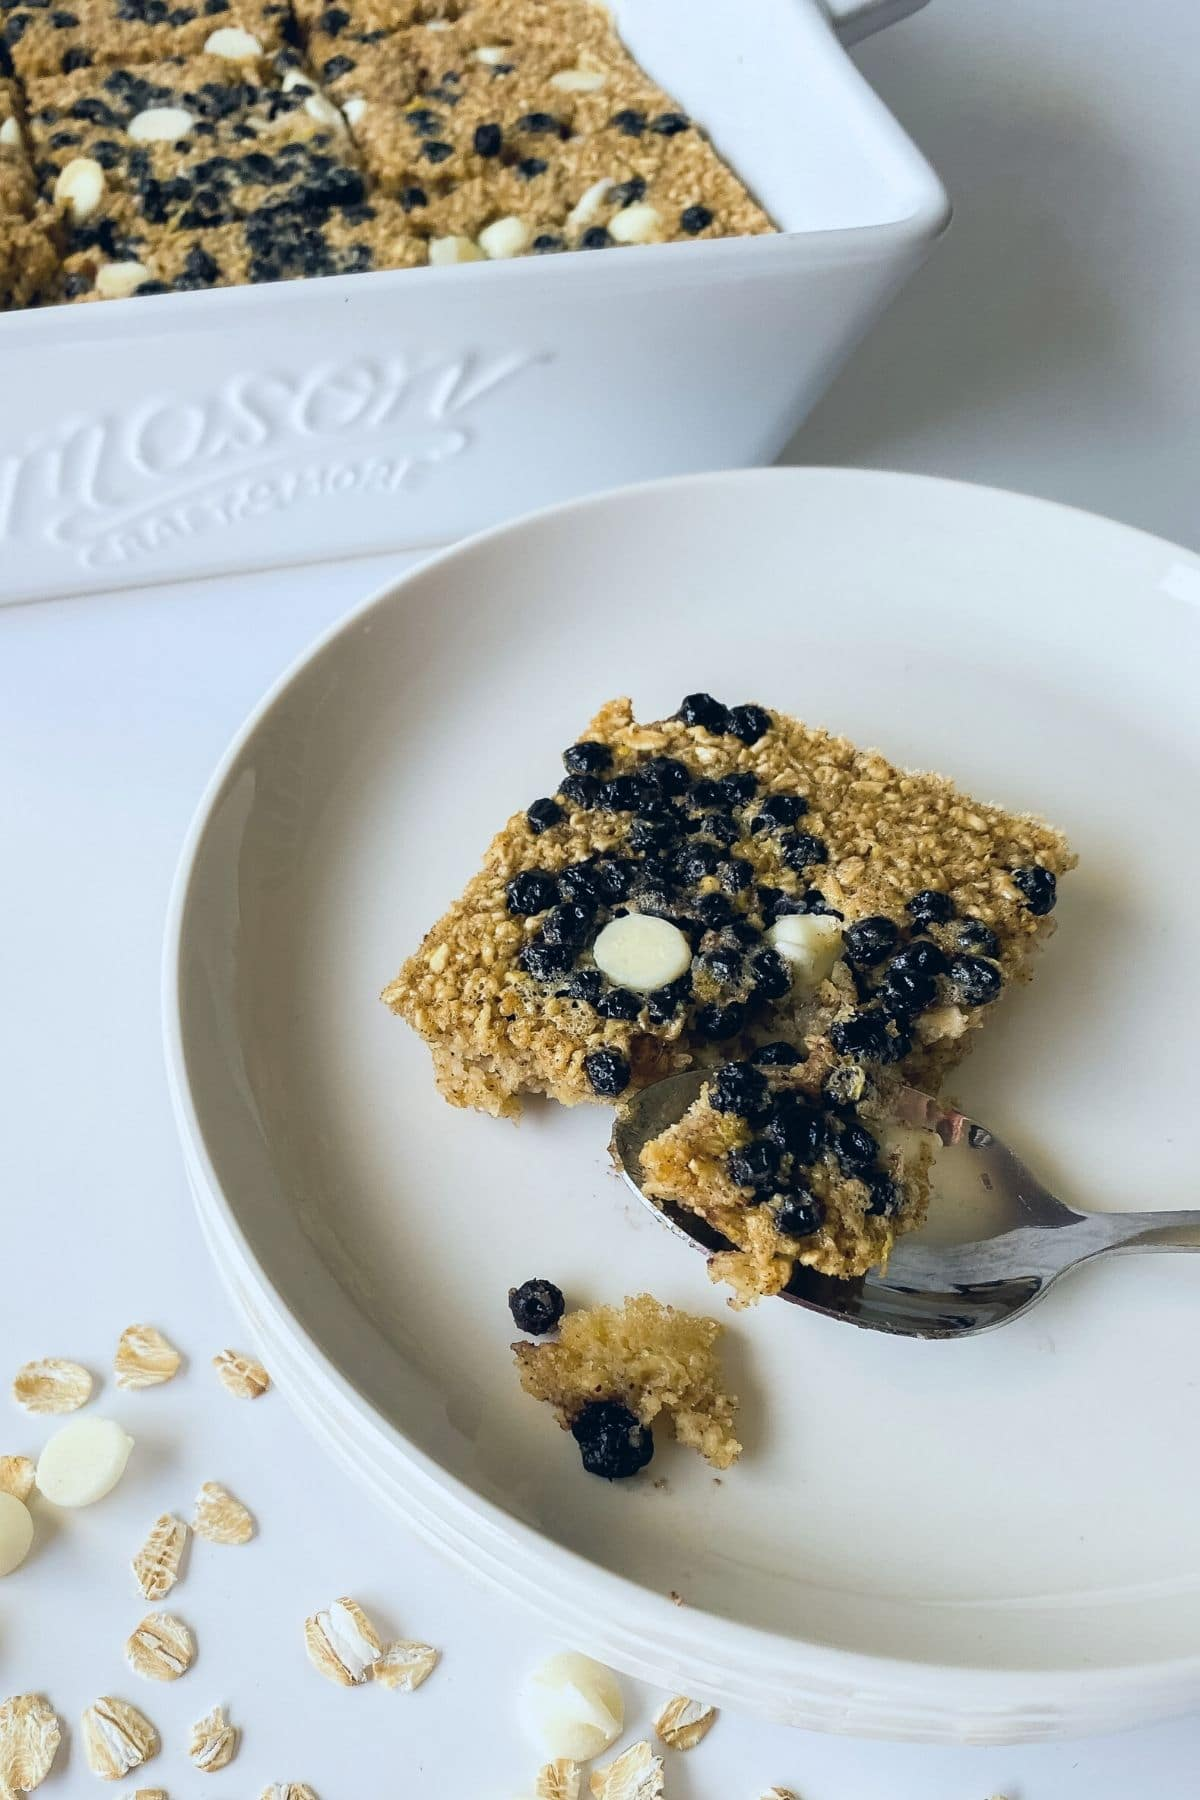 Slice of blueberry oatmeal bar on white plate